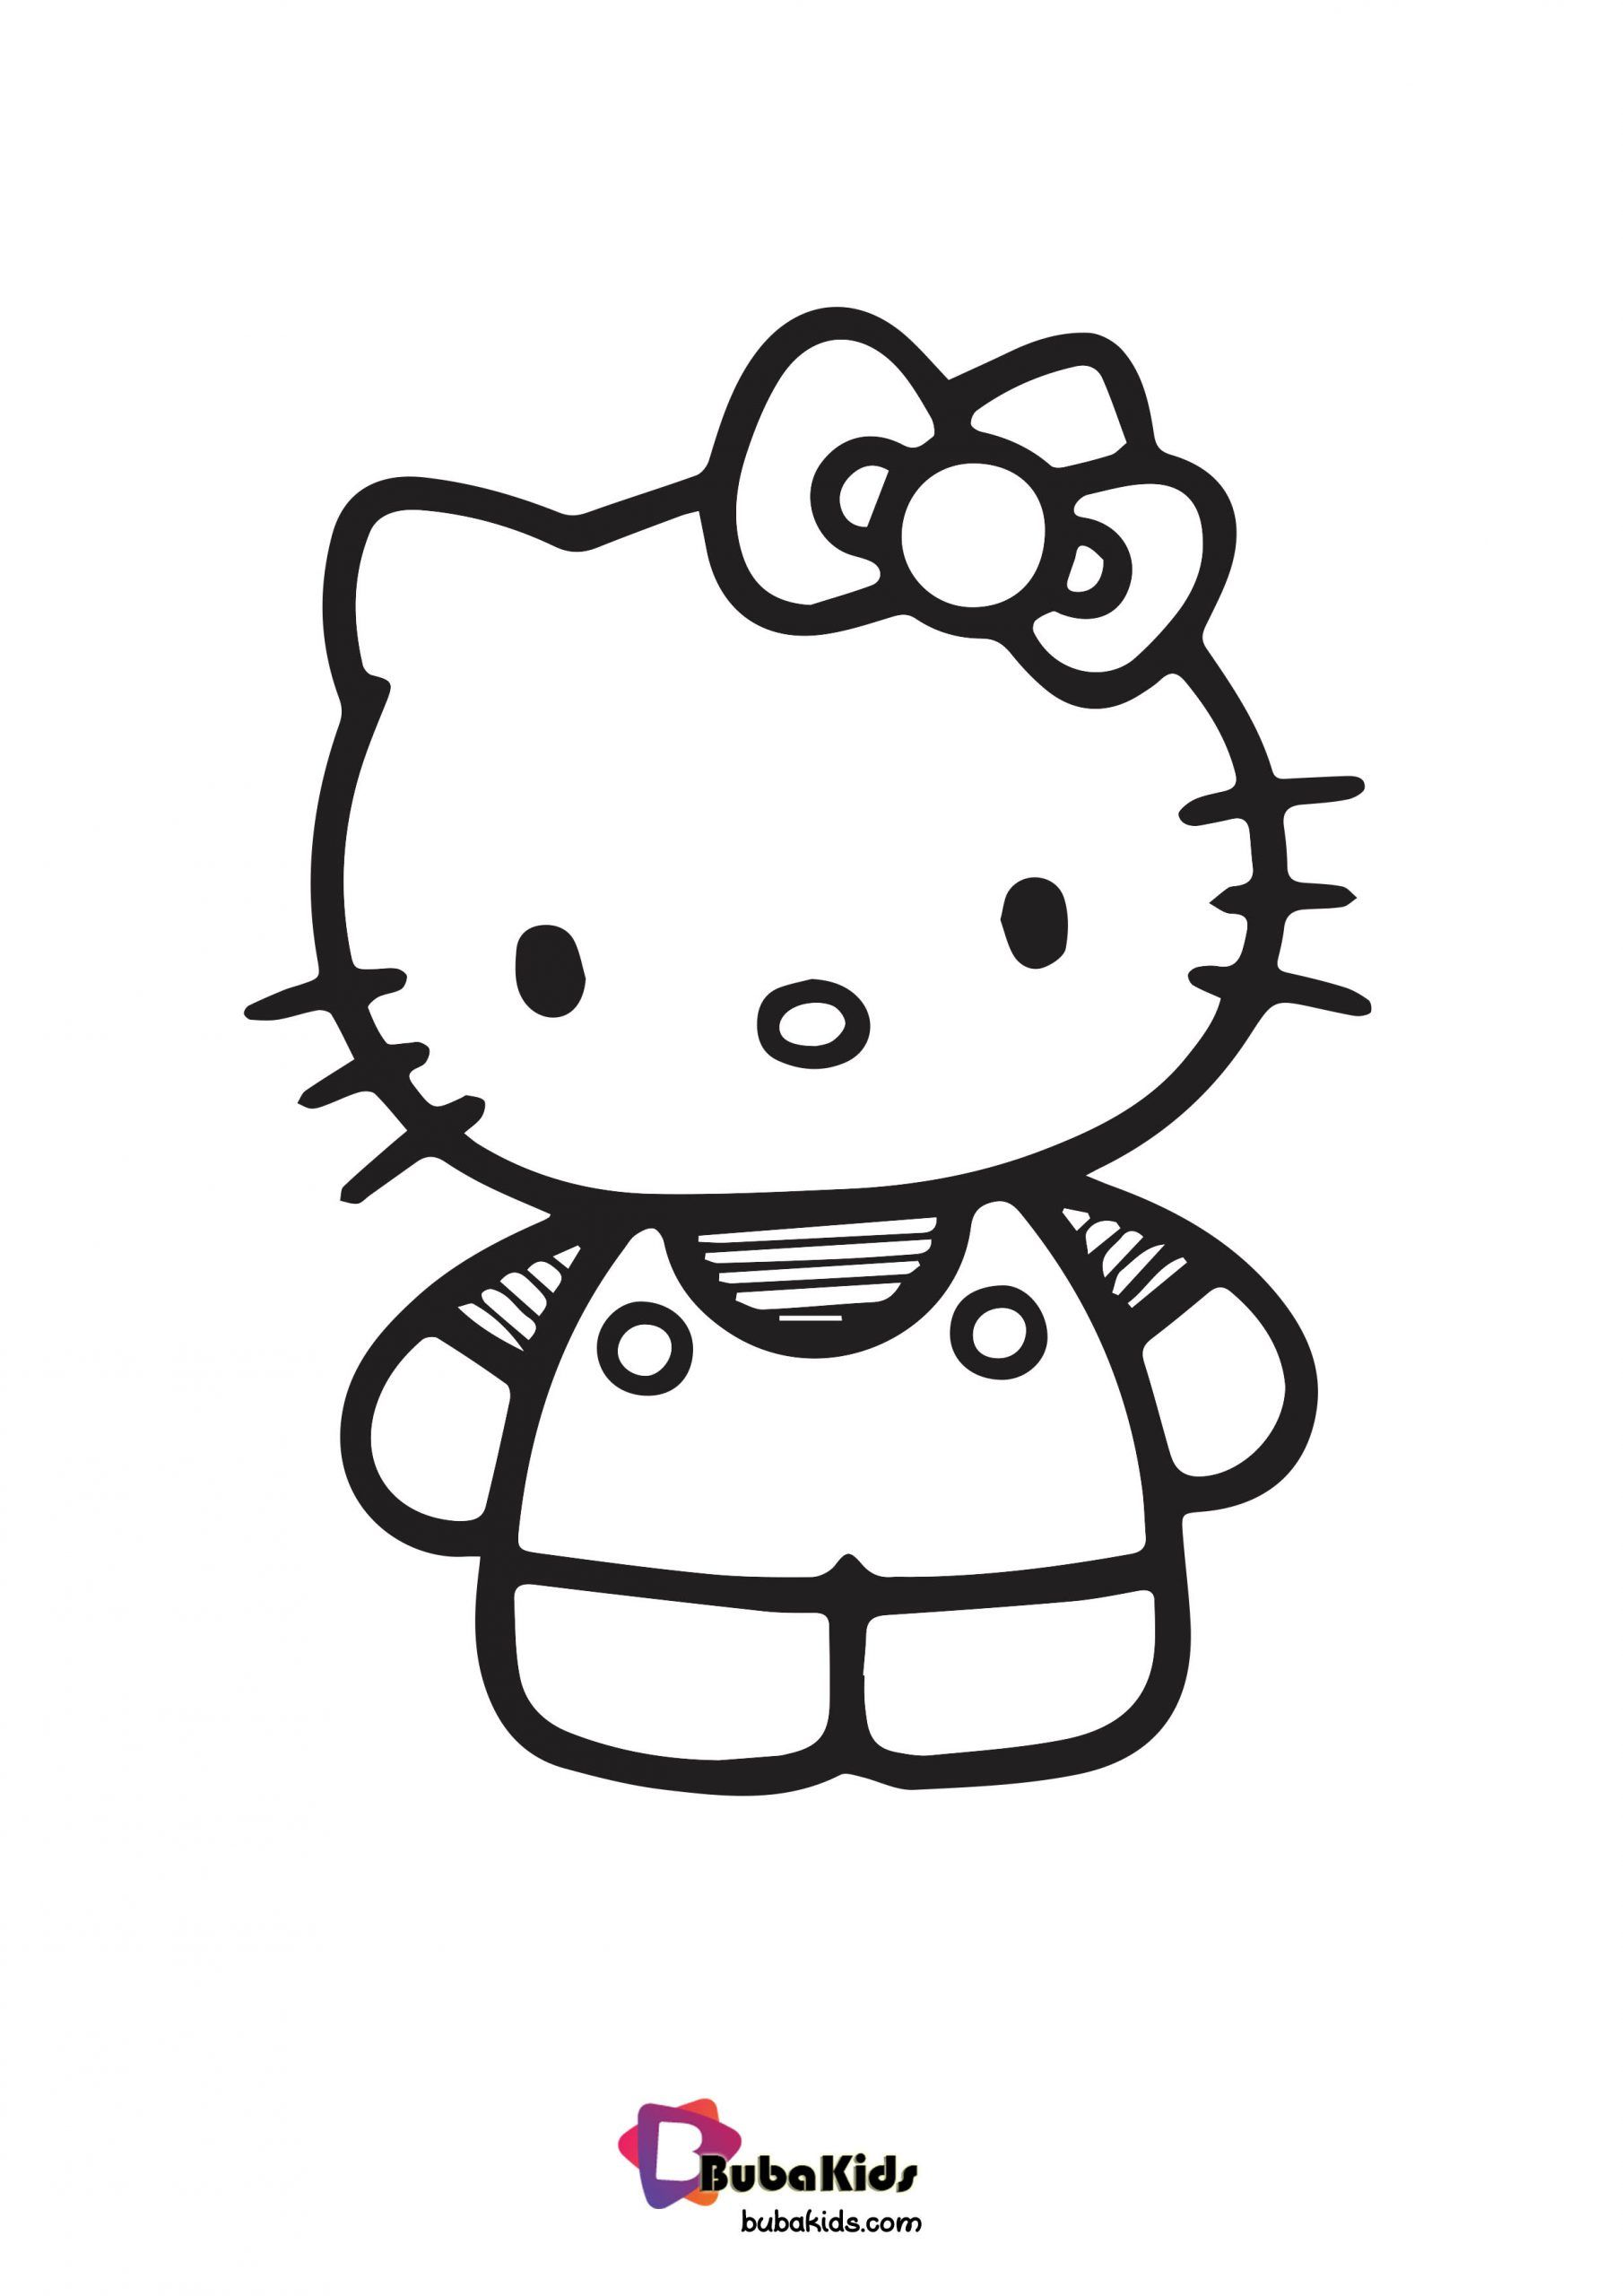 Hello Kitty Cute Coloring Page For Girls Collection Of Hello Kitty Coloring Pages For Hello Kitty Colouring Pages Cute Coloring Pages Coloring Pages For Girls